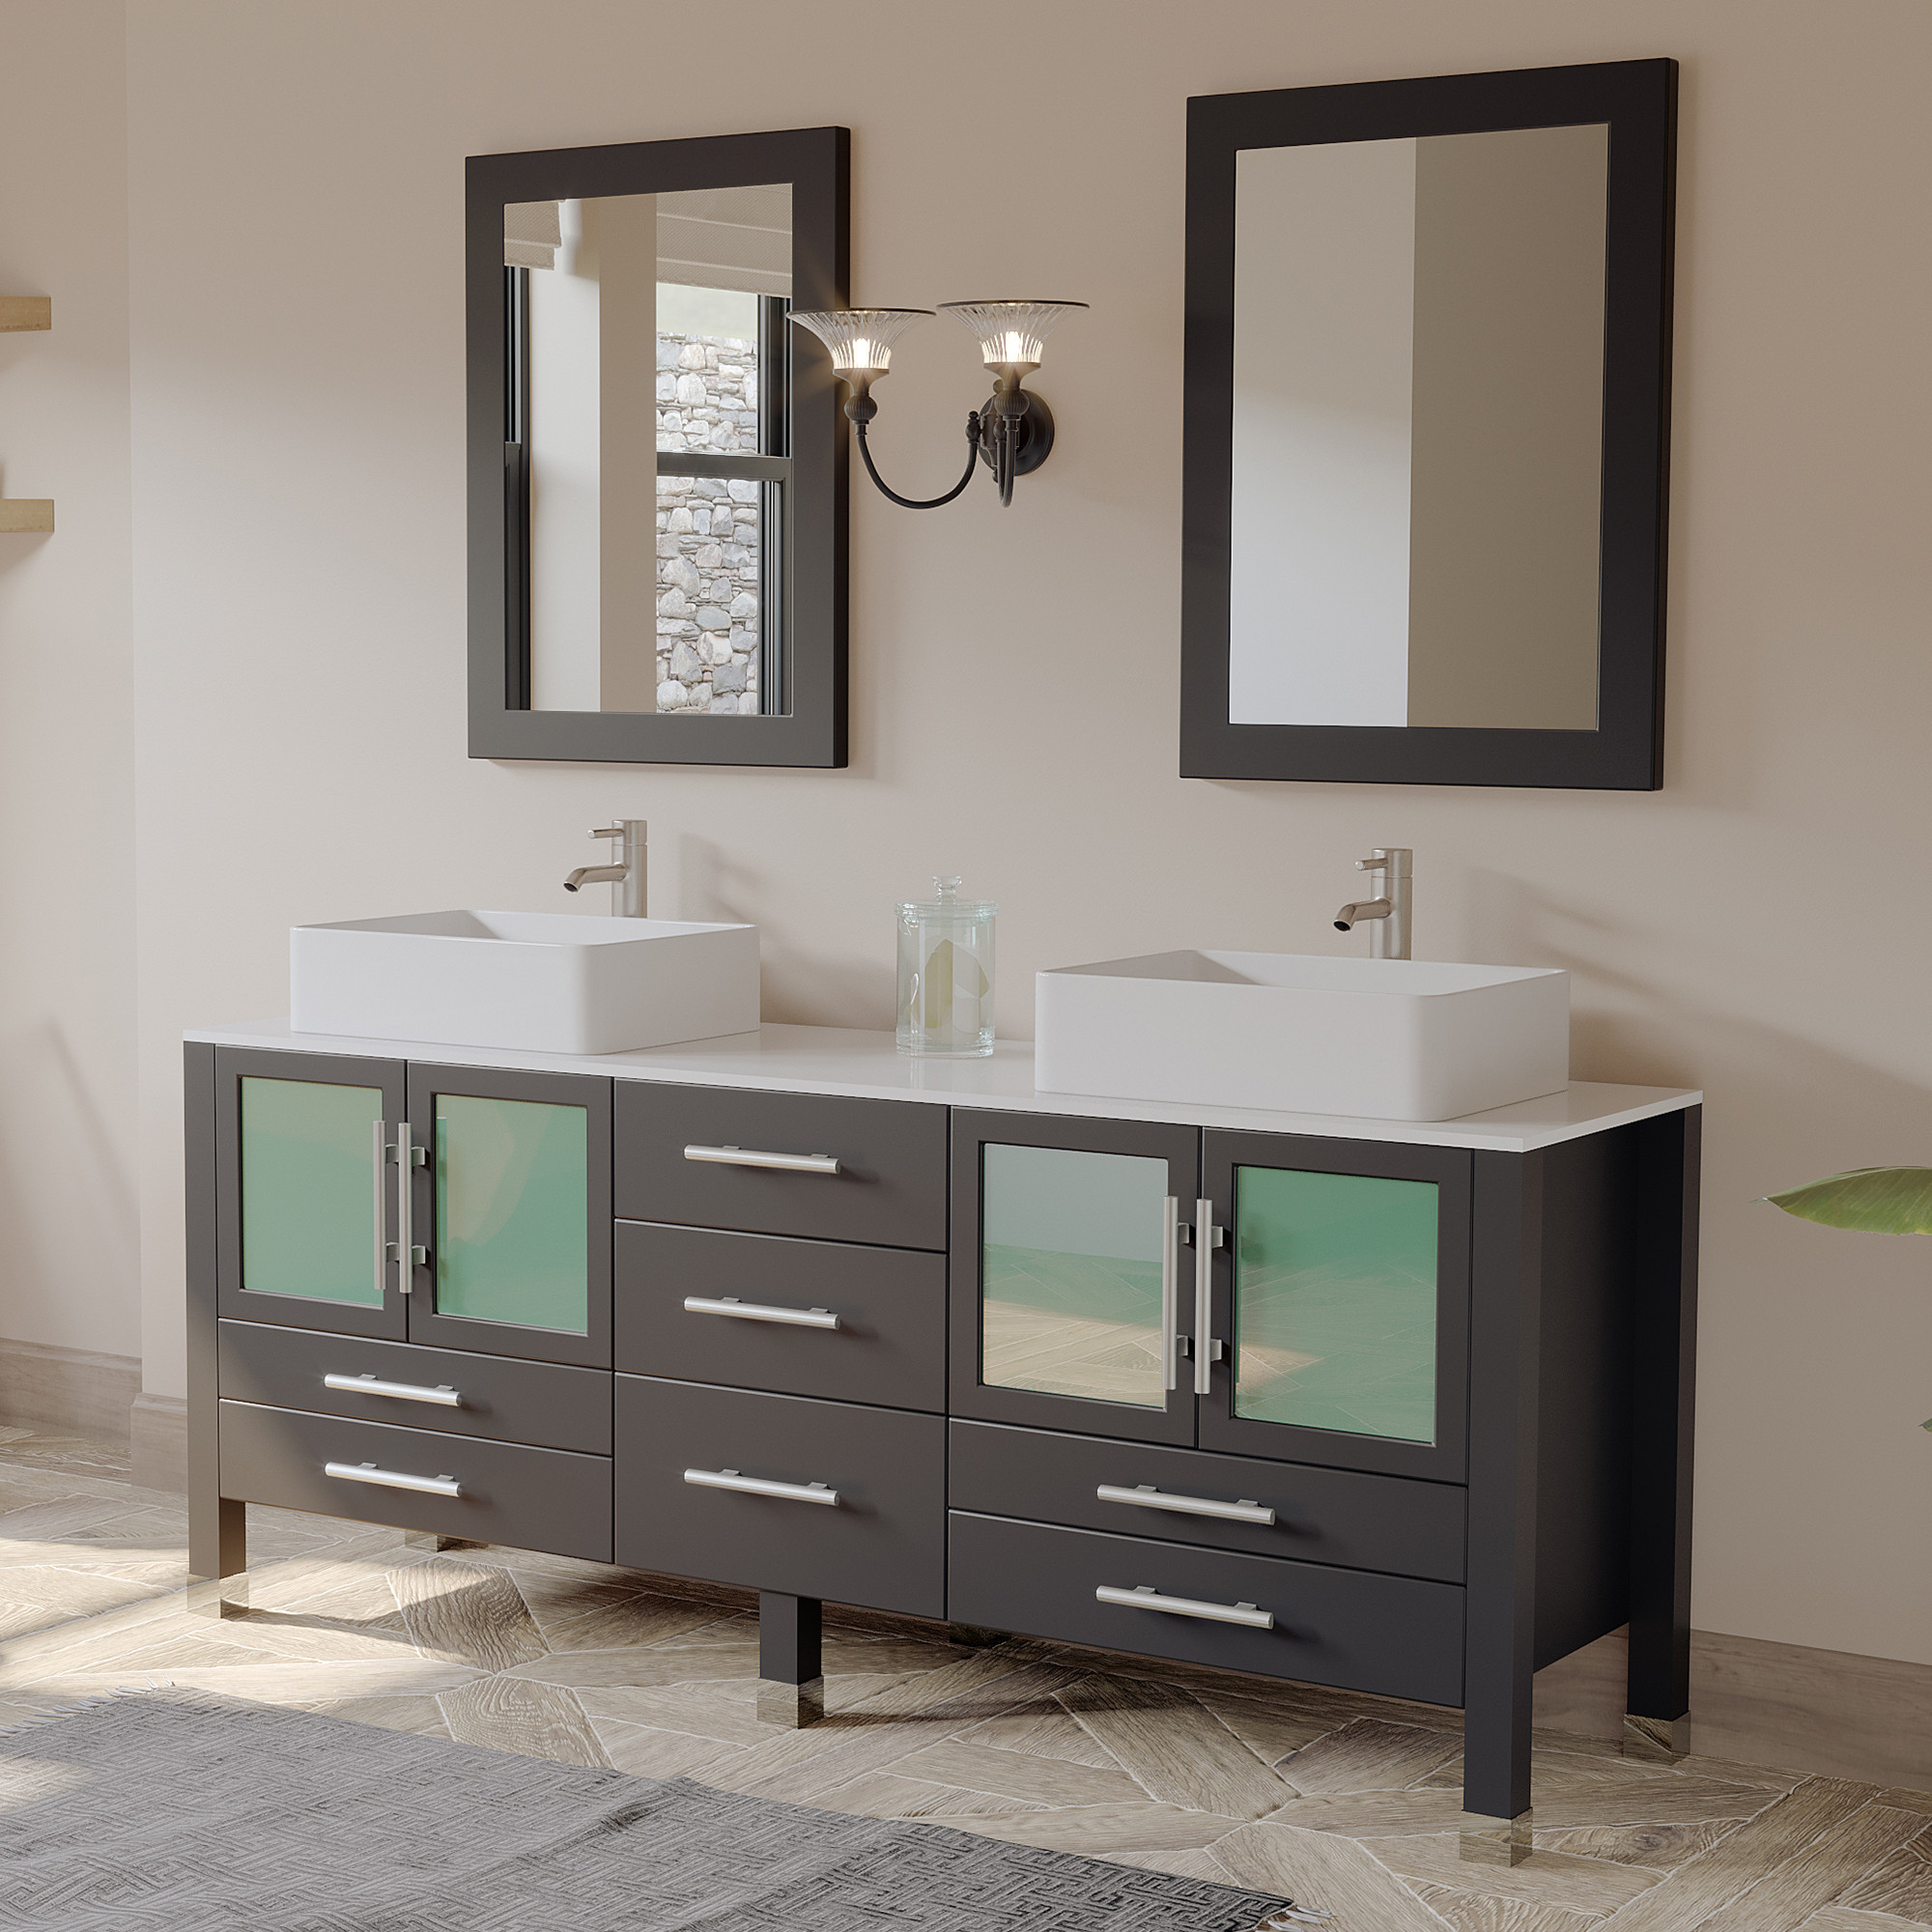 Cambridge 8119xl-BN 71 Inch Wood Double Vanity Set With White Porcelain Top